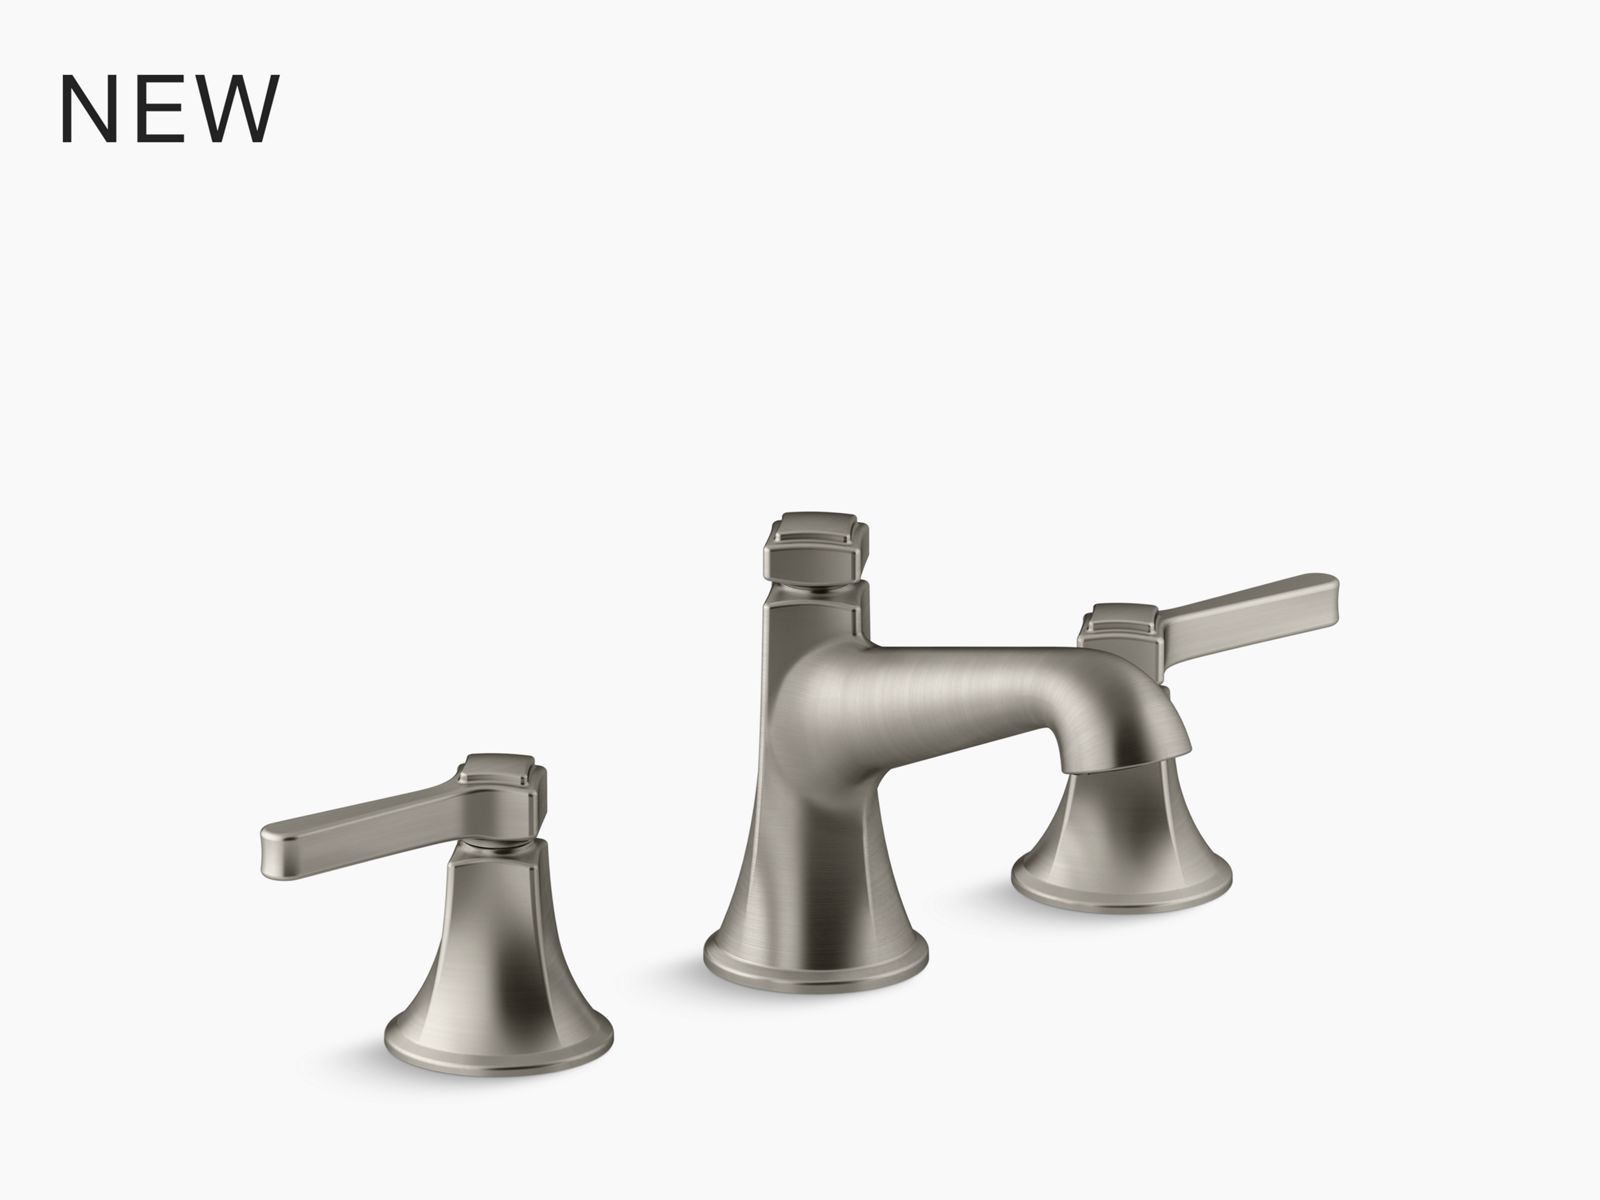 forte 2 hole kitchen sink faucet with 9 1 16 spout matching finish sidespray